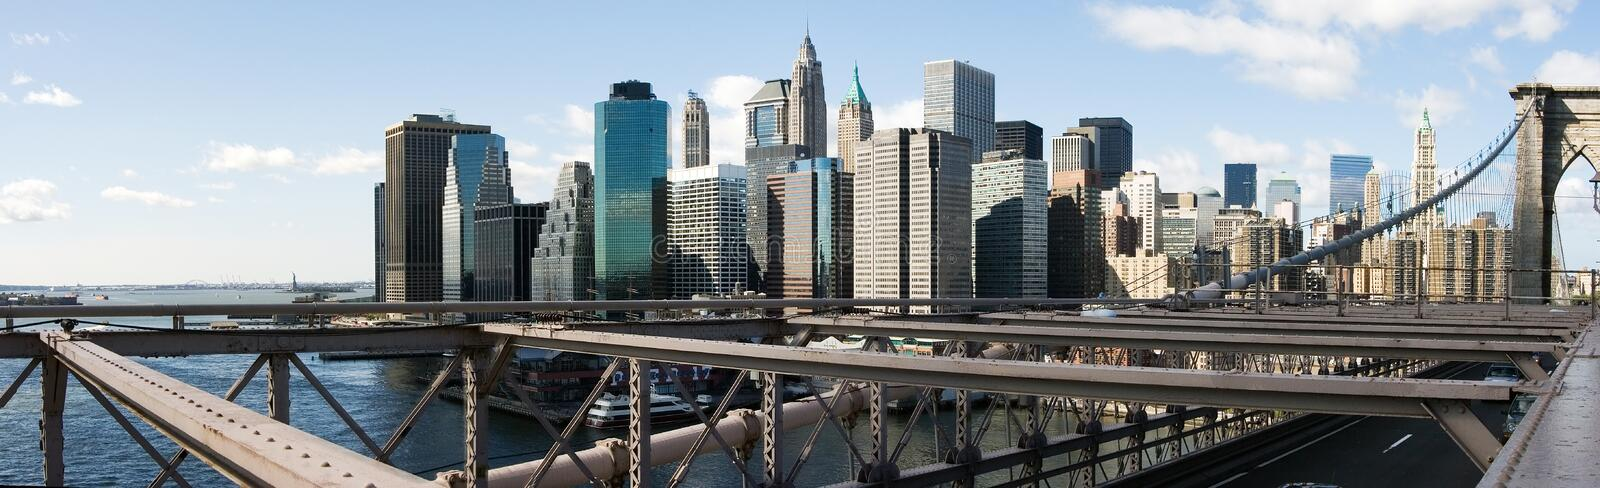 New York City Skyline. Lower Manhattan New York City (NYC) Skyline as seen from the Brooklyn Bridge, view of the Financial district royalty free stock photo